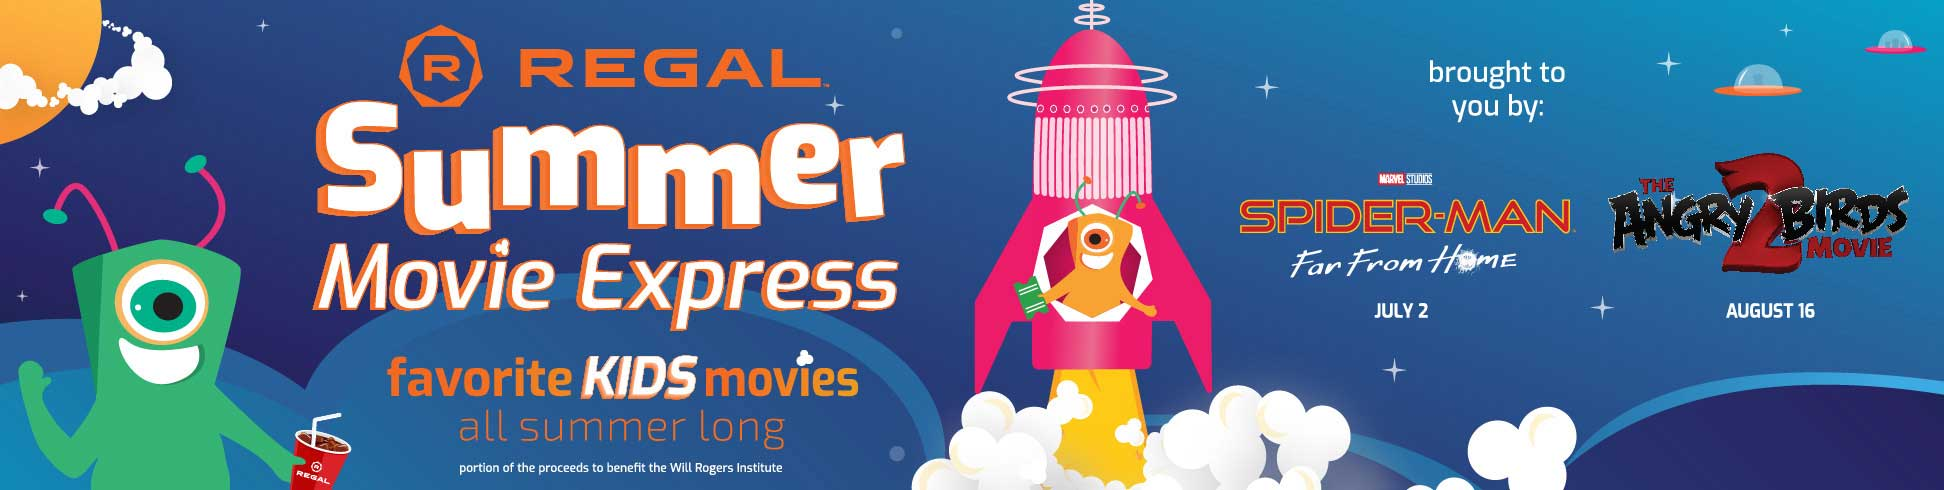 Regal Summer-Movie-Express 2019